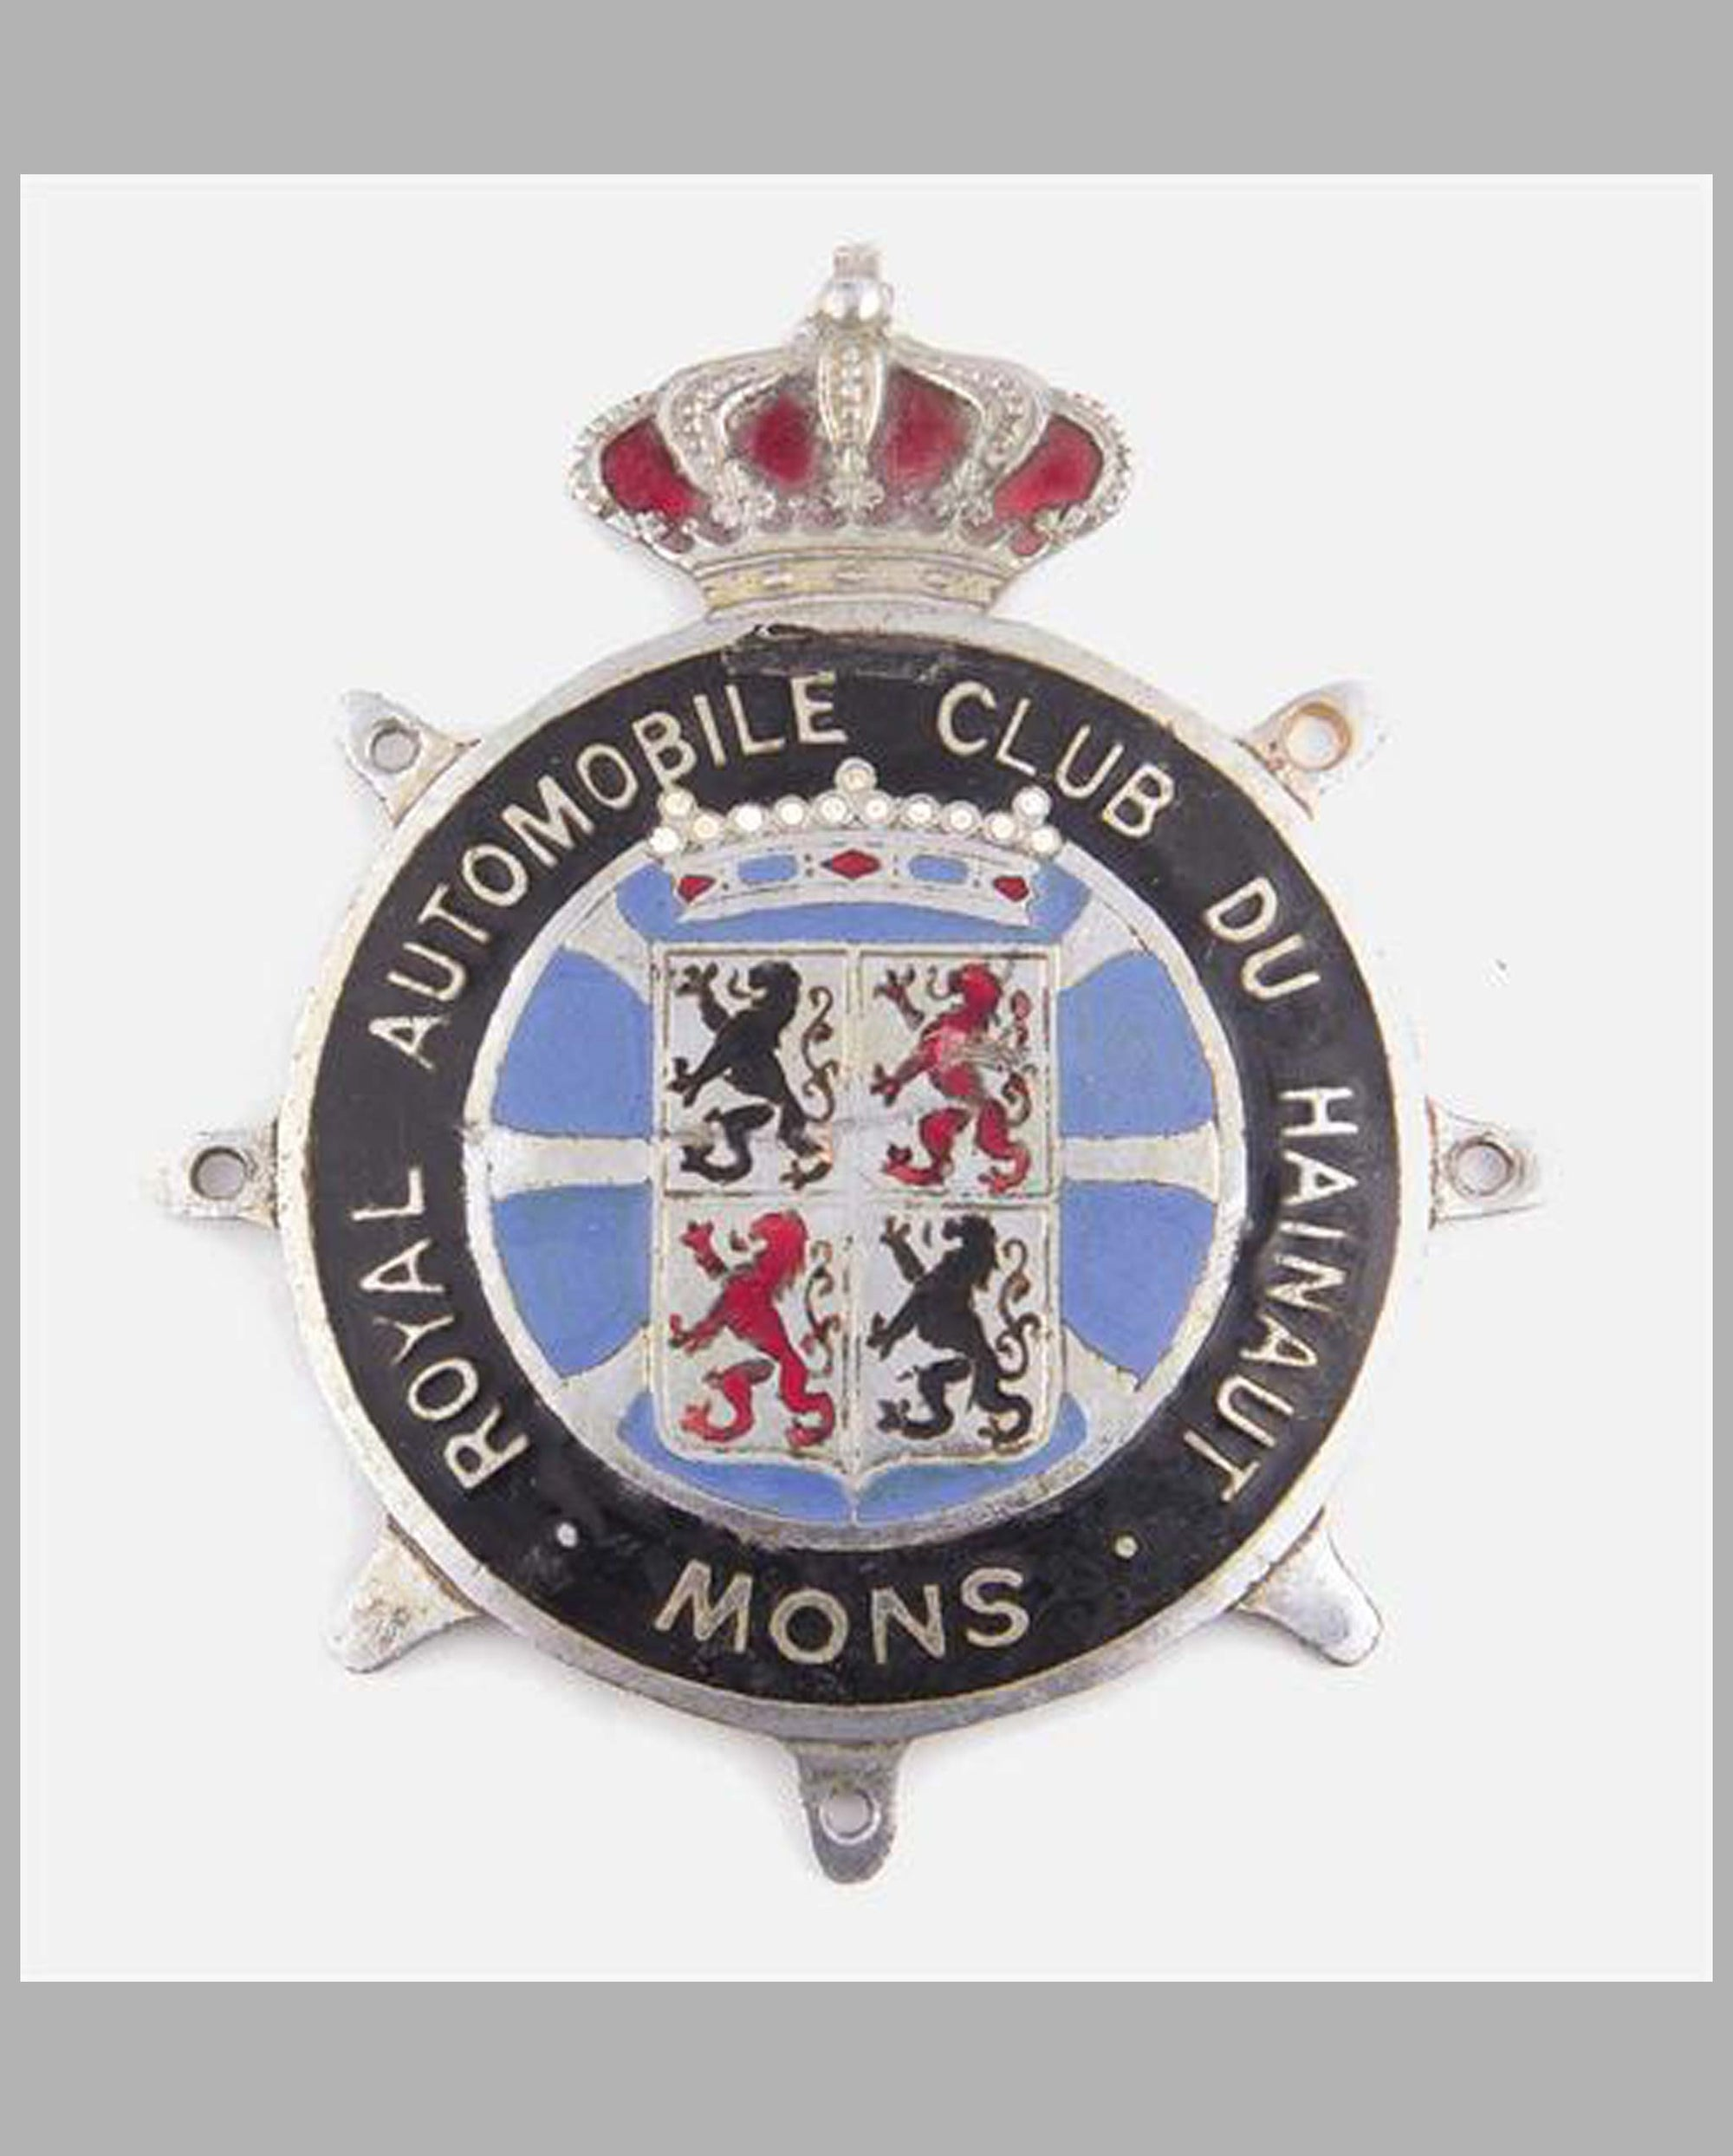 Royal Automobile Club du Hainaut - Snow badge, Belgium